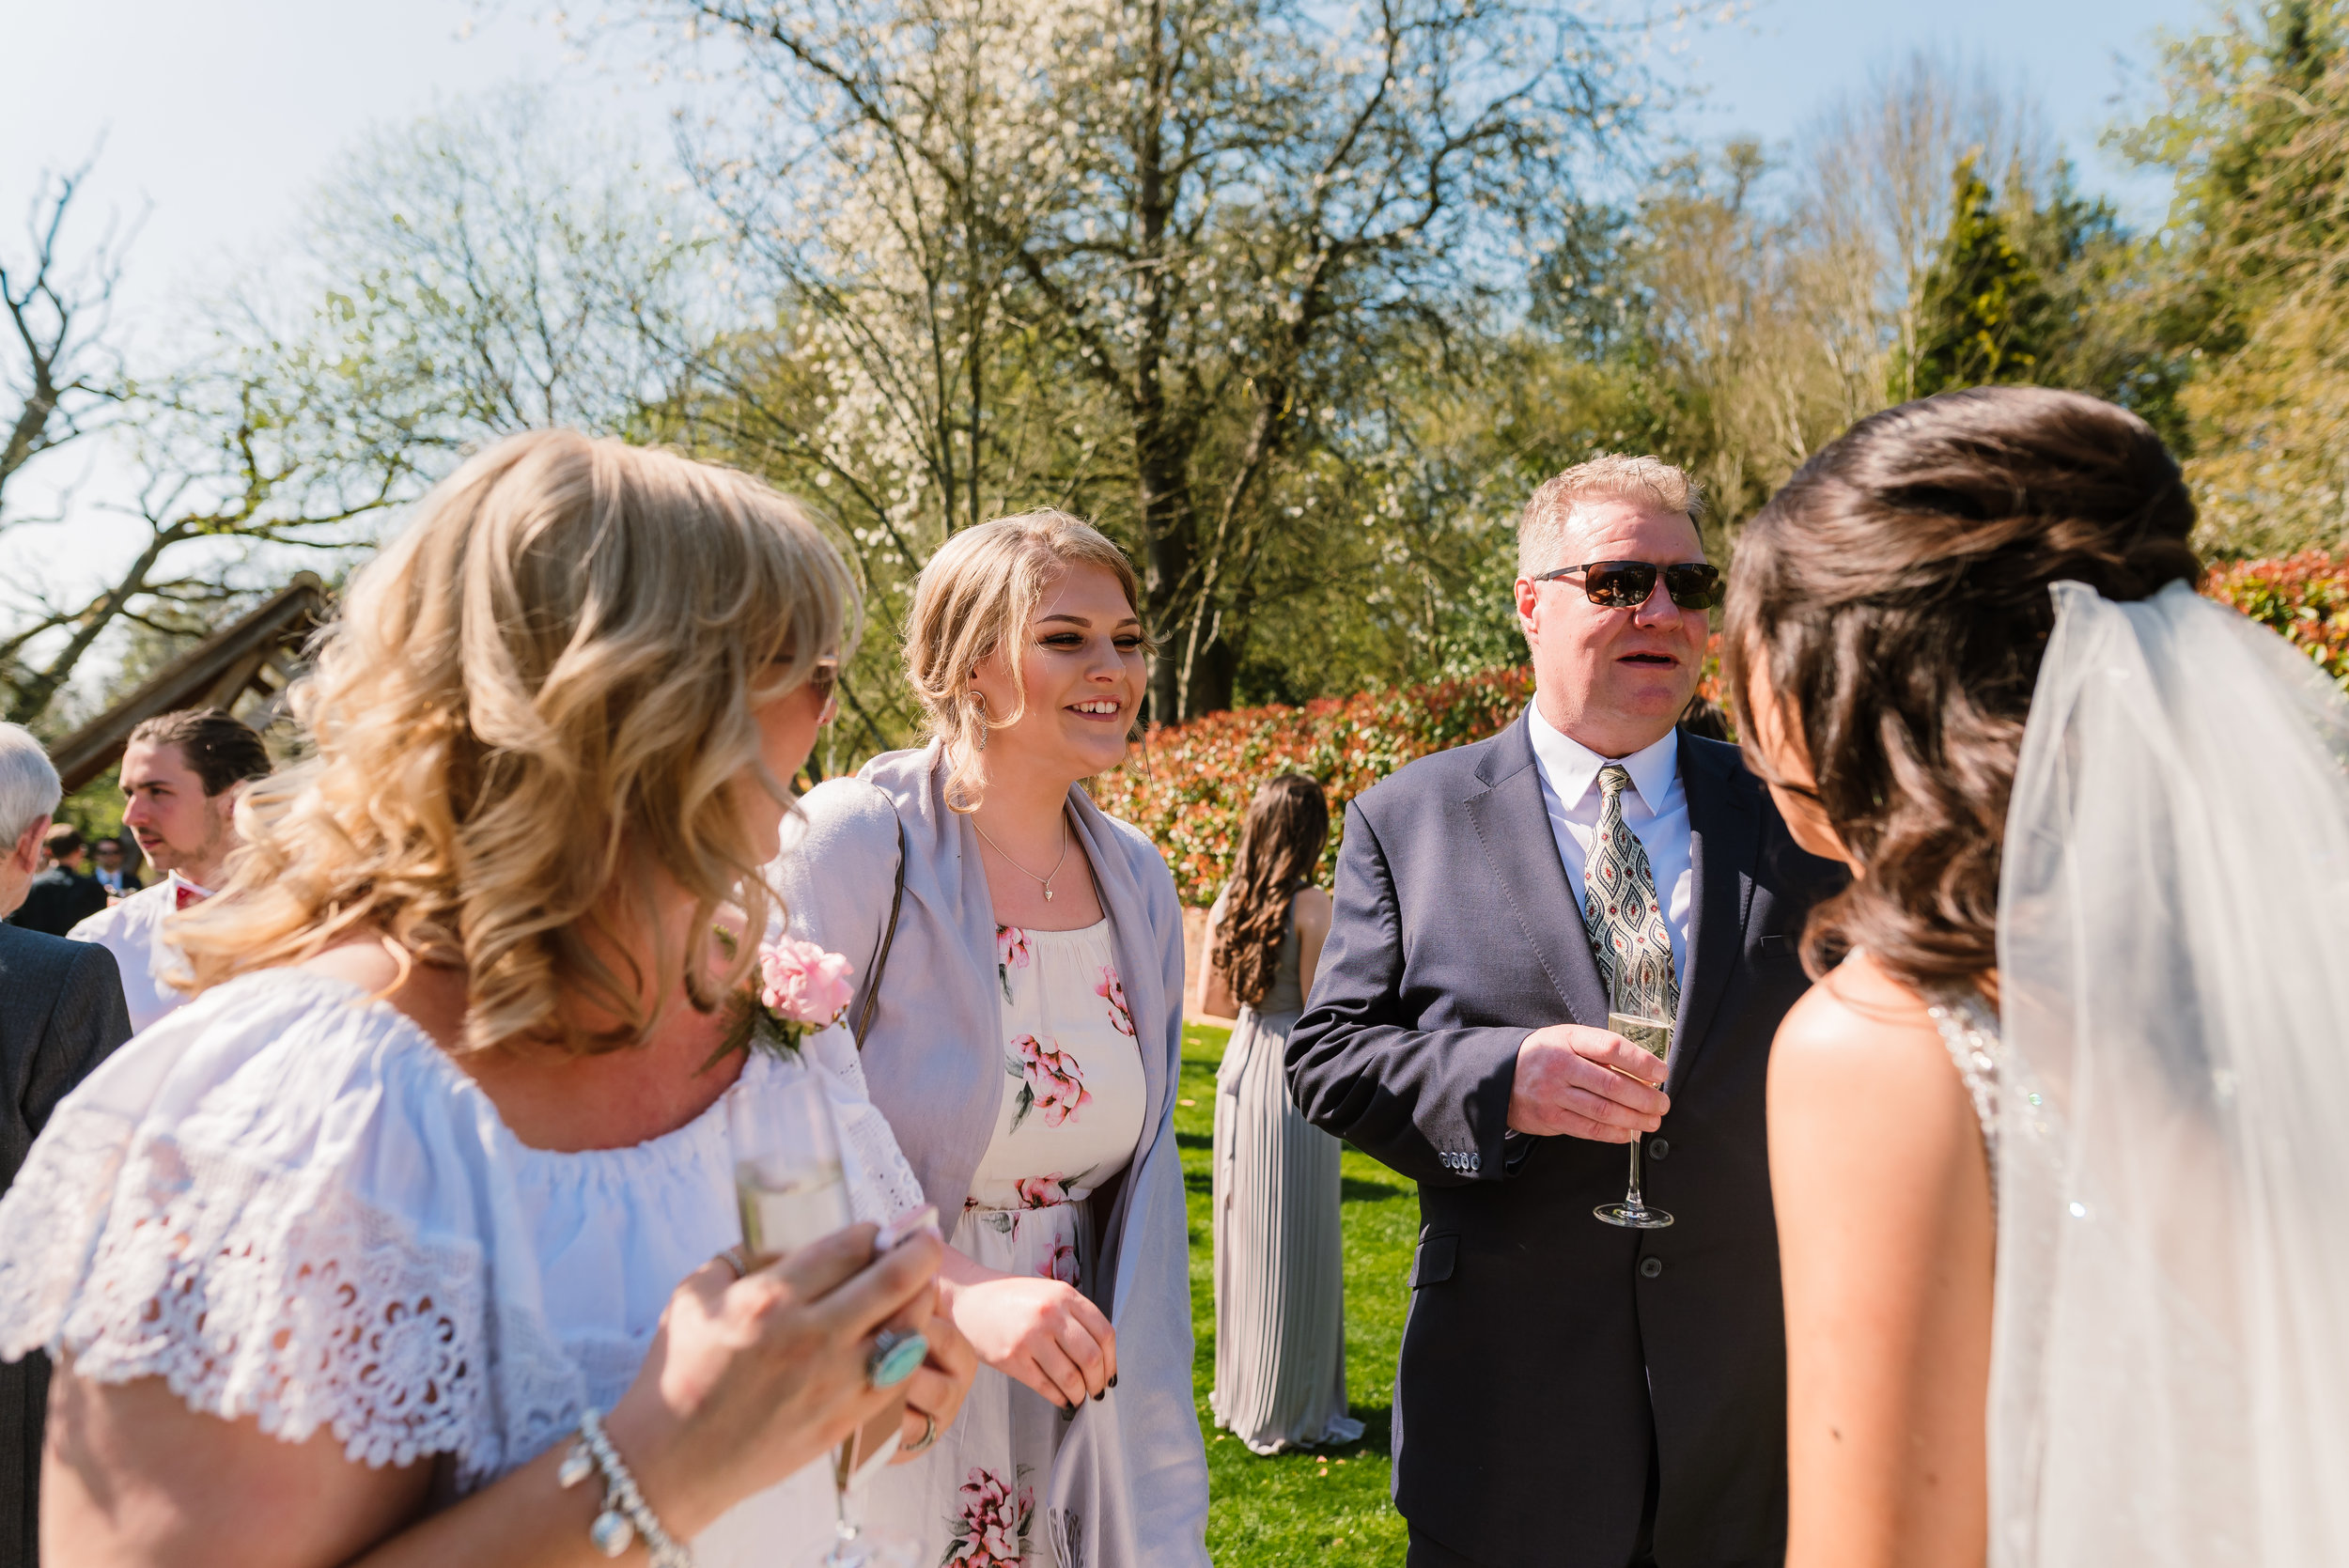 Sarah-Fishlock-Photography : Hampshire-wedding-photographer-hampshire : fleet-wedding-photographer-fleet : Millbridge-Court-Wedding-Photographer : Millbridge-Court-Wedding-Venue : Surrey-wedding-venue-724.jpg